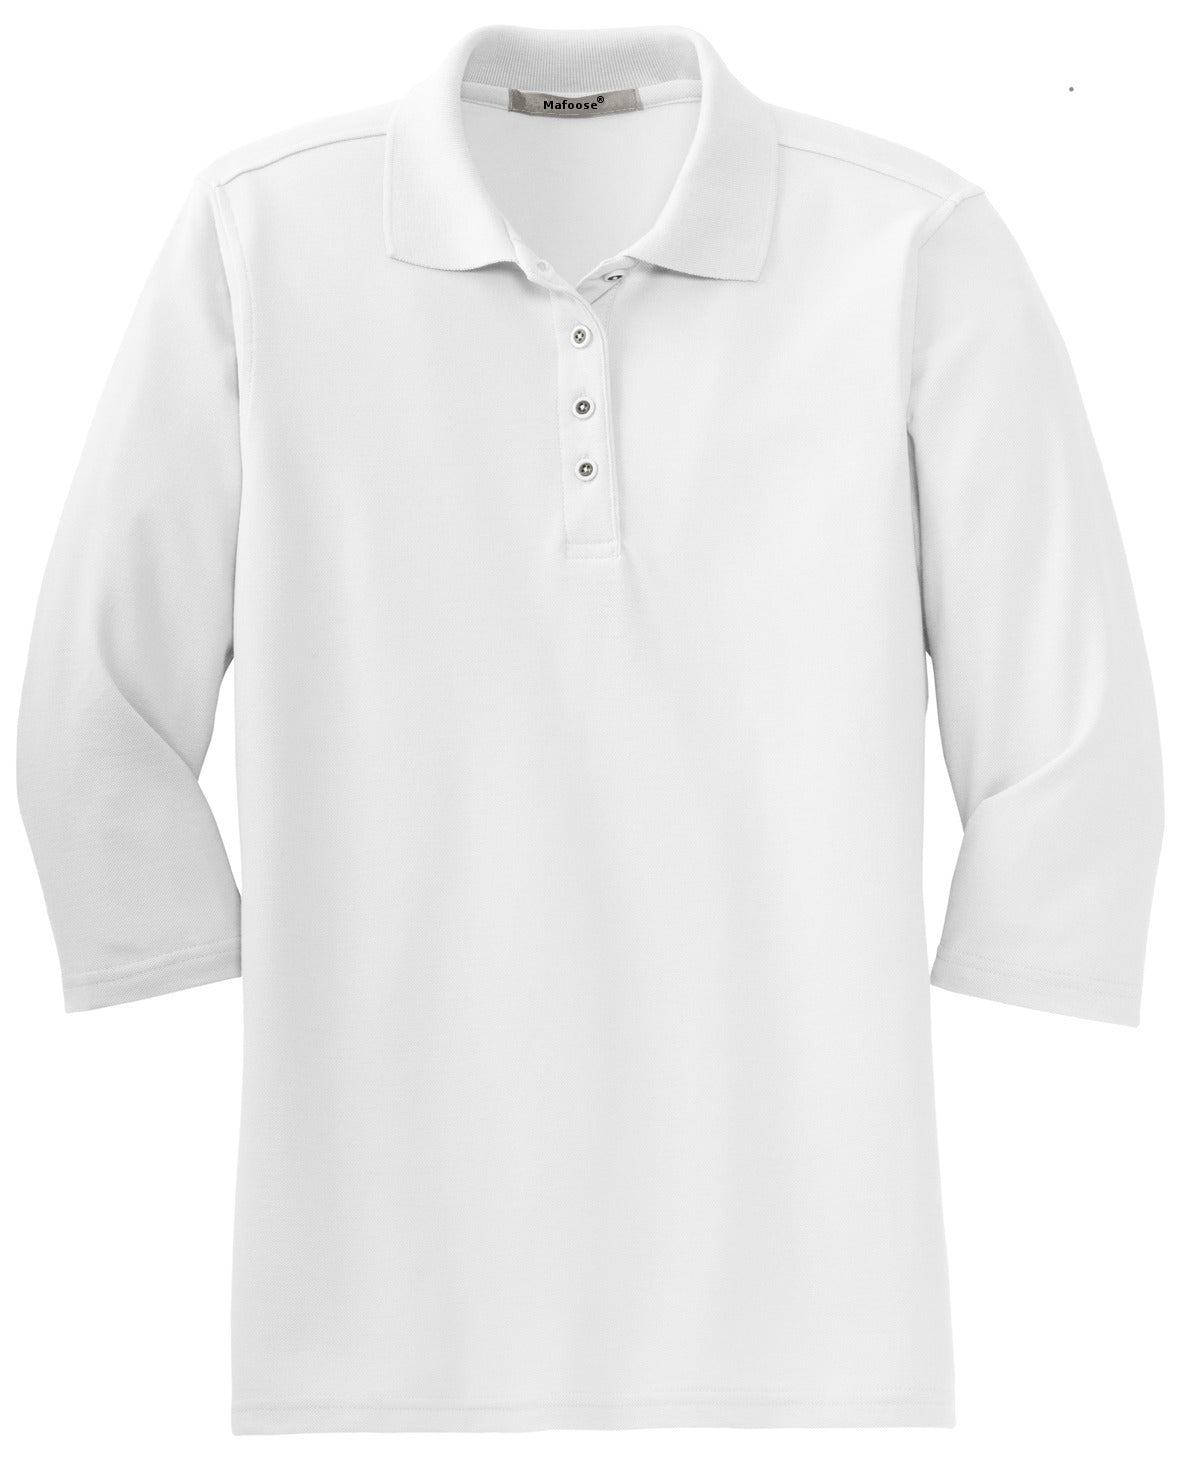 Mafoose Women's Silk Touch ¾ Sleeve Polo Shirt White-Front